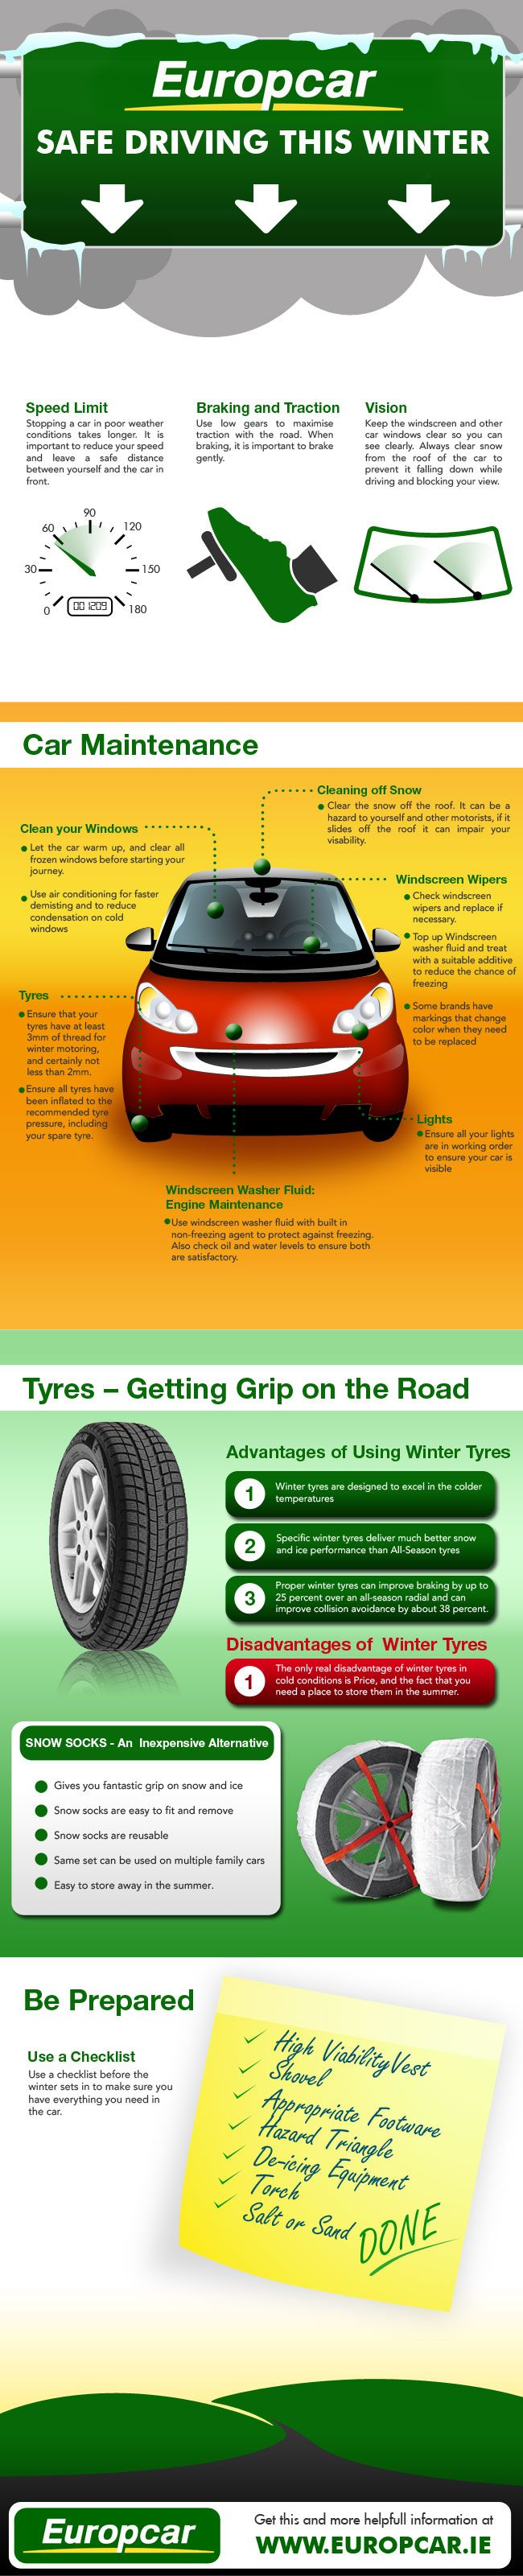 Winter safety tips for truck drivers - Europcar Infographic On Driving Tips For The Colder Season Of All The Seasons Winter